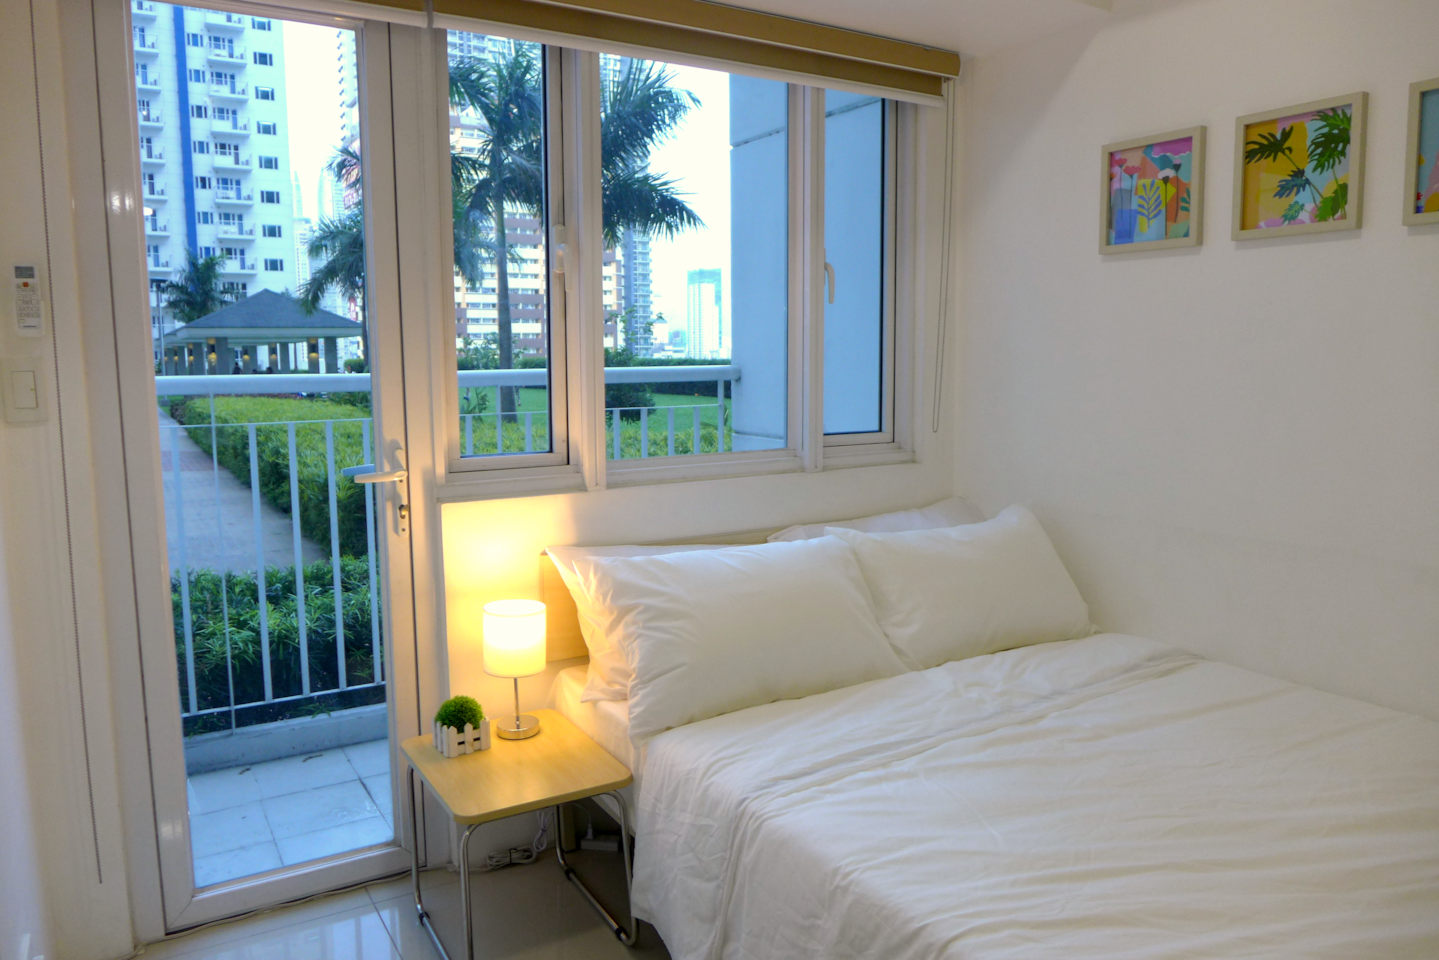 You can enjoy the view of the amenities from the balcony